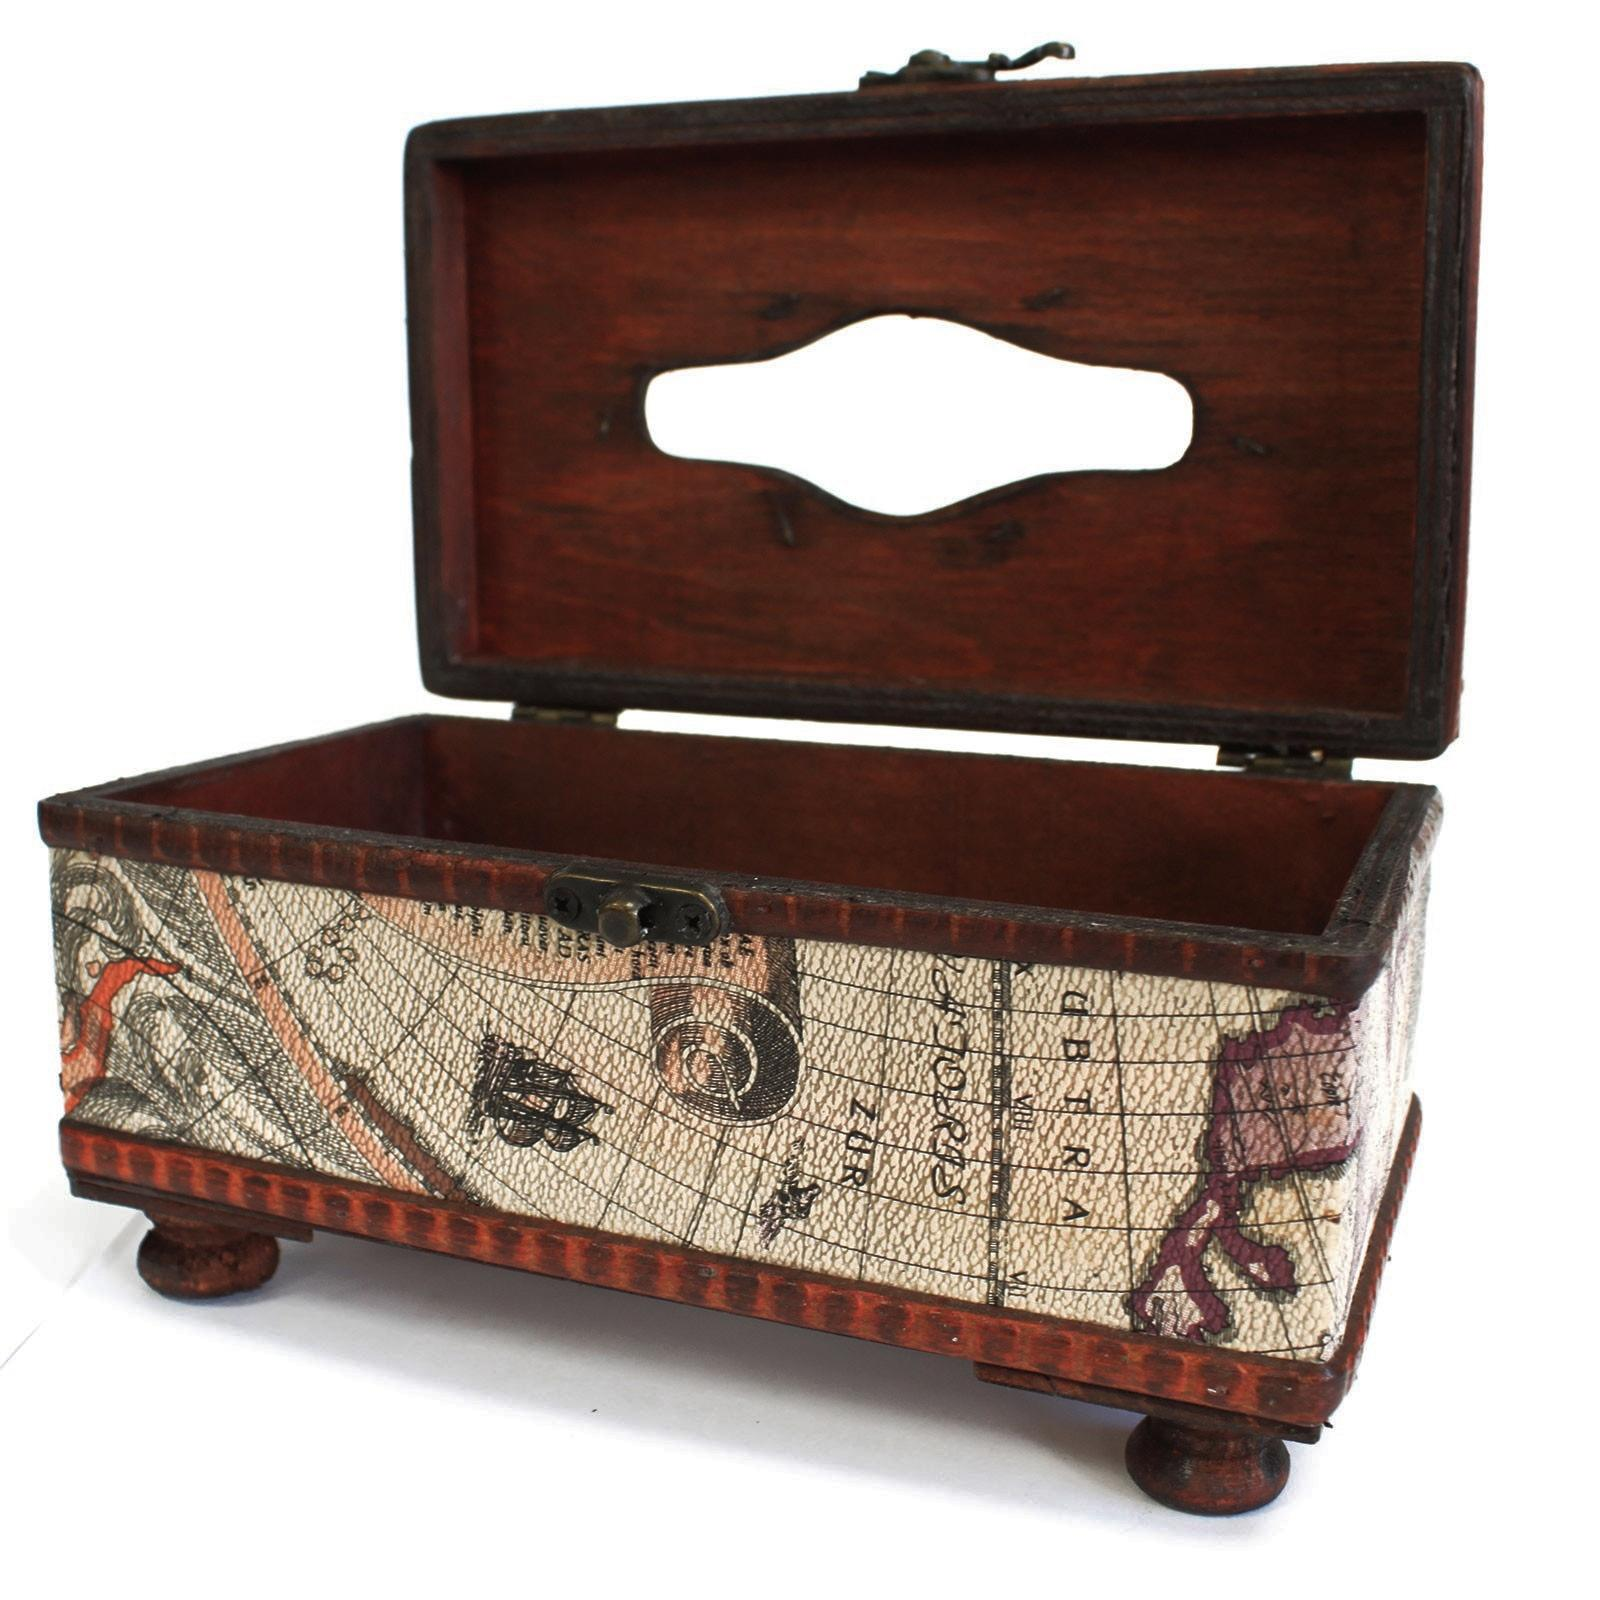 Old Map Tissue Box On Feet - Antique map box